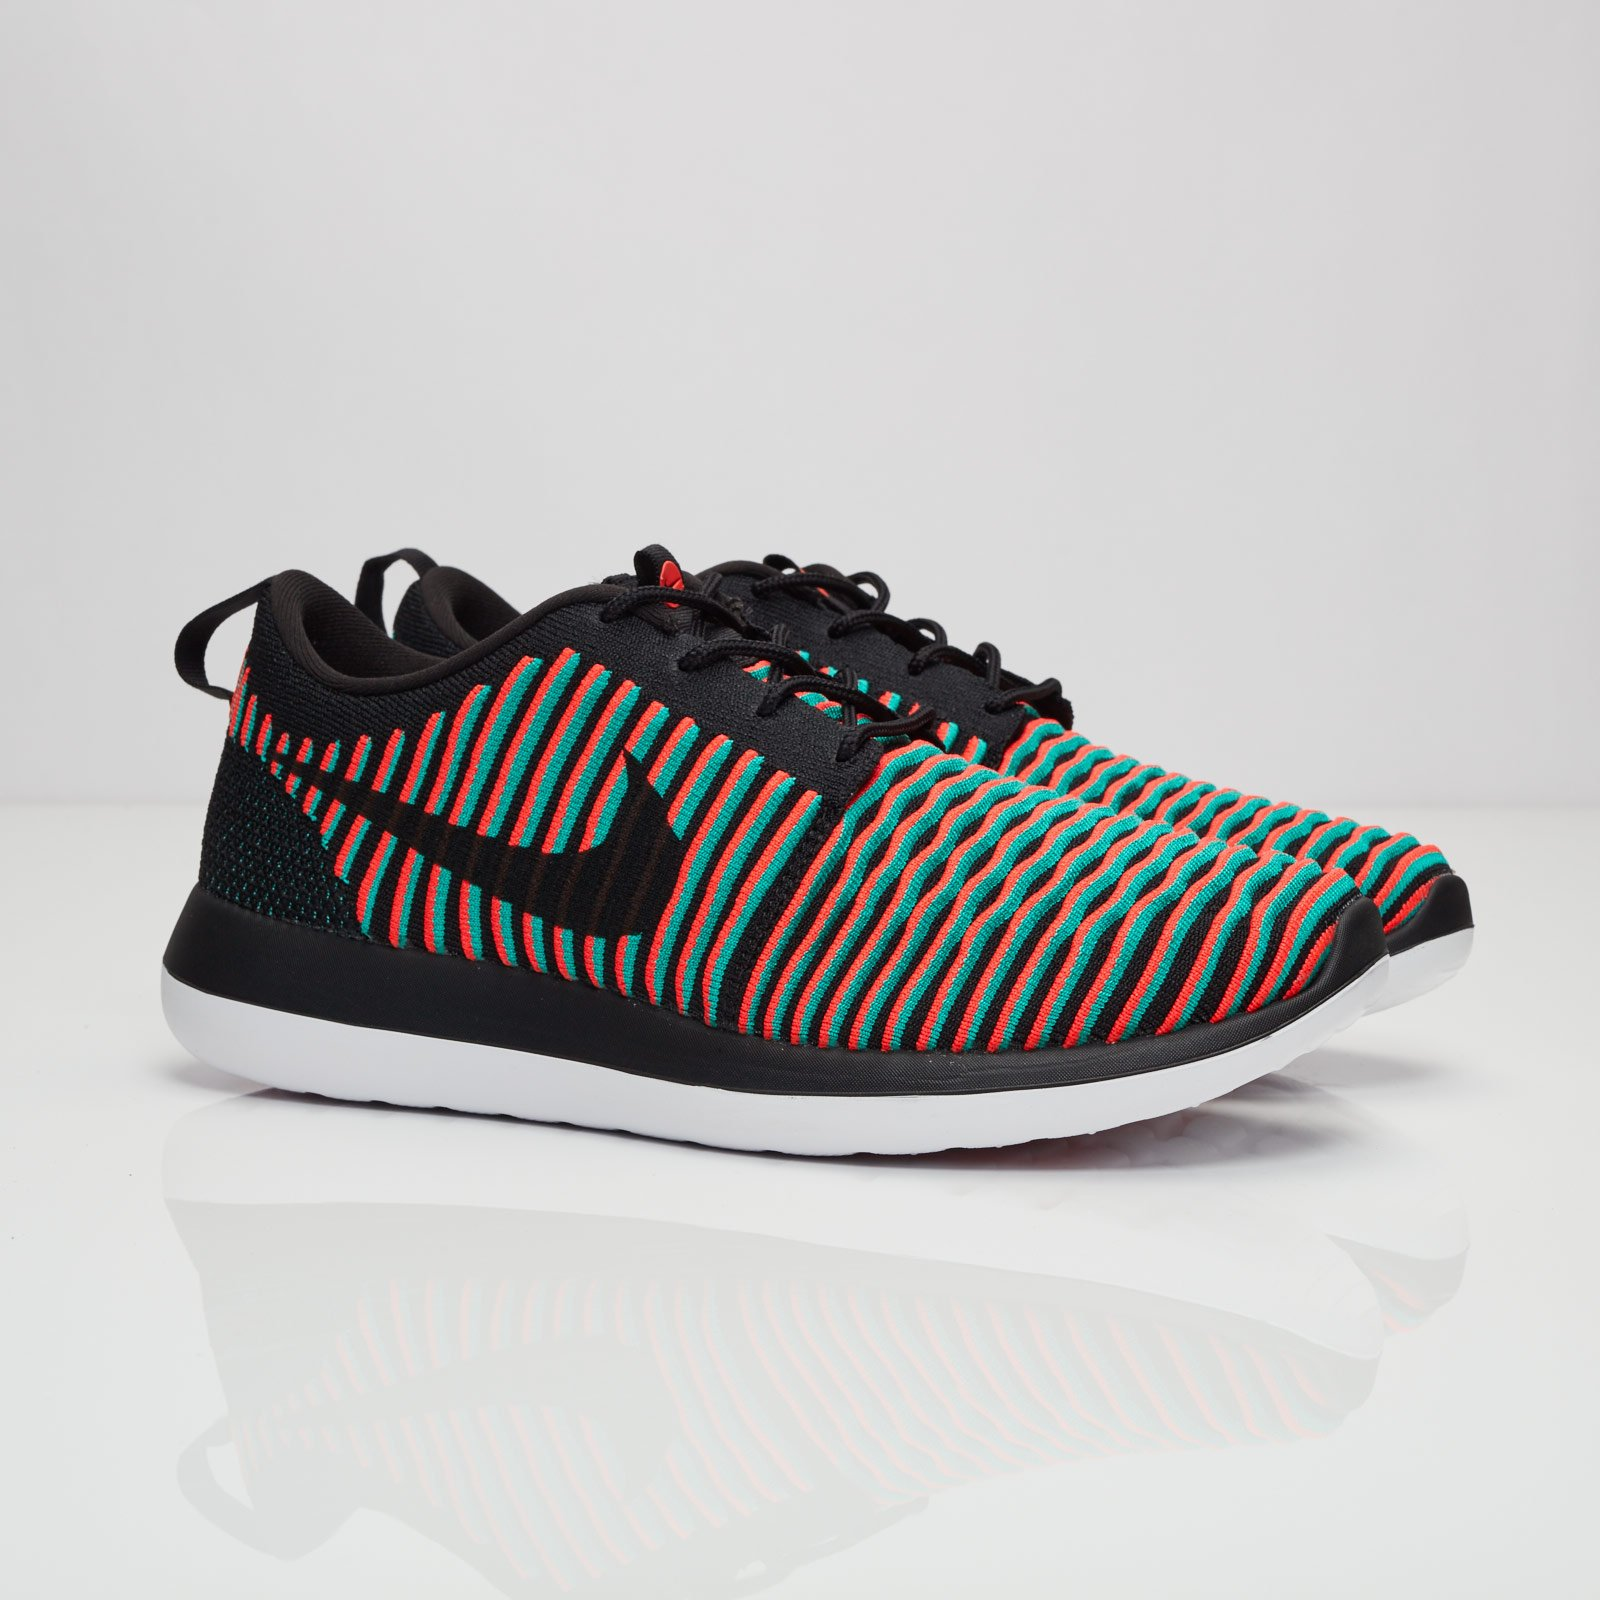 new style 84fb3 30e13 Nike Roshe Two Flyknit